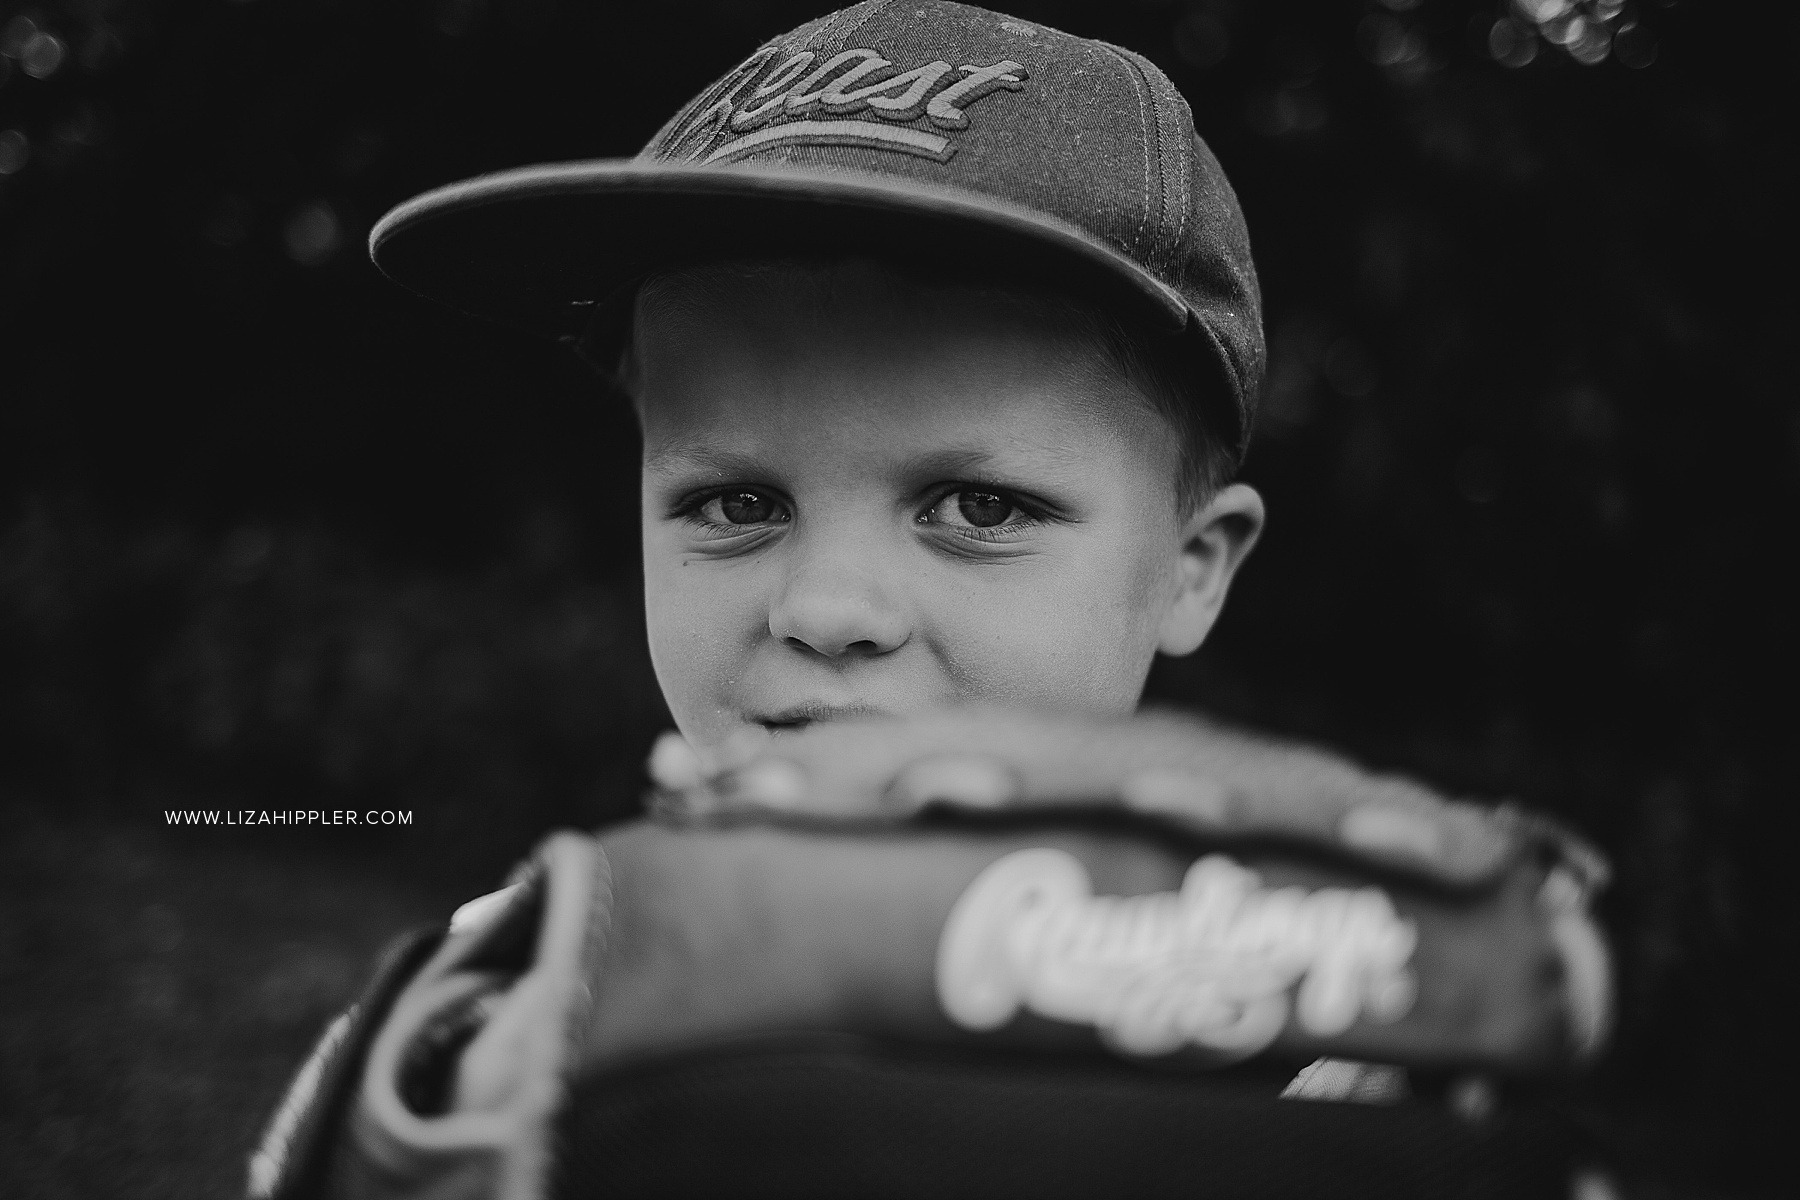 black and white image of close-up of boy with baseball mitt